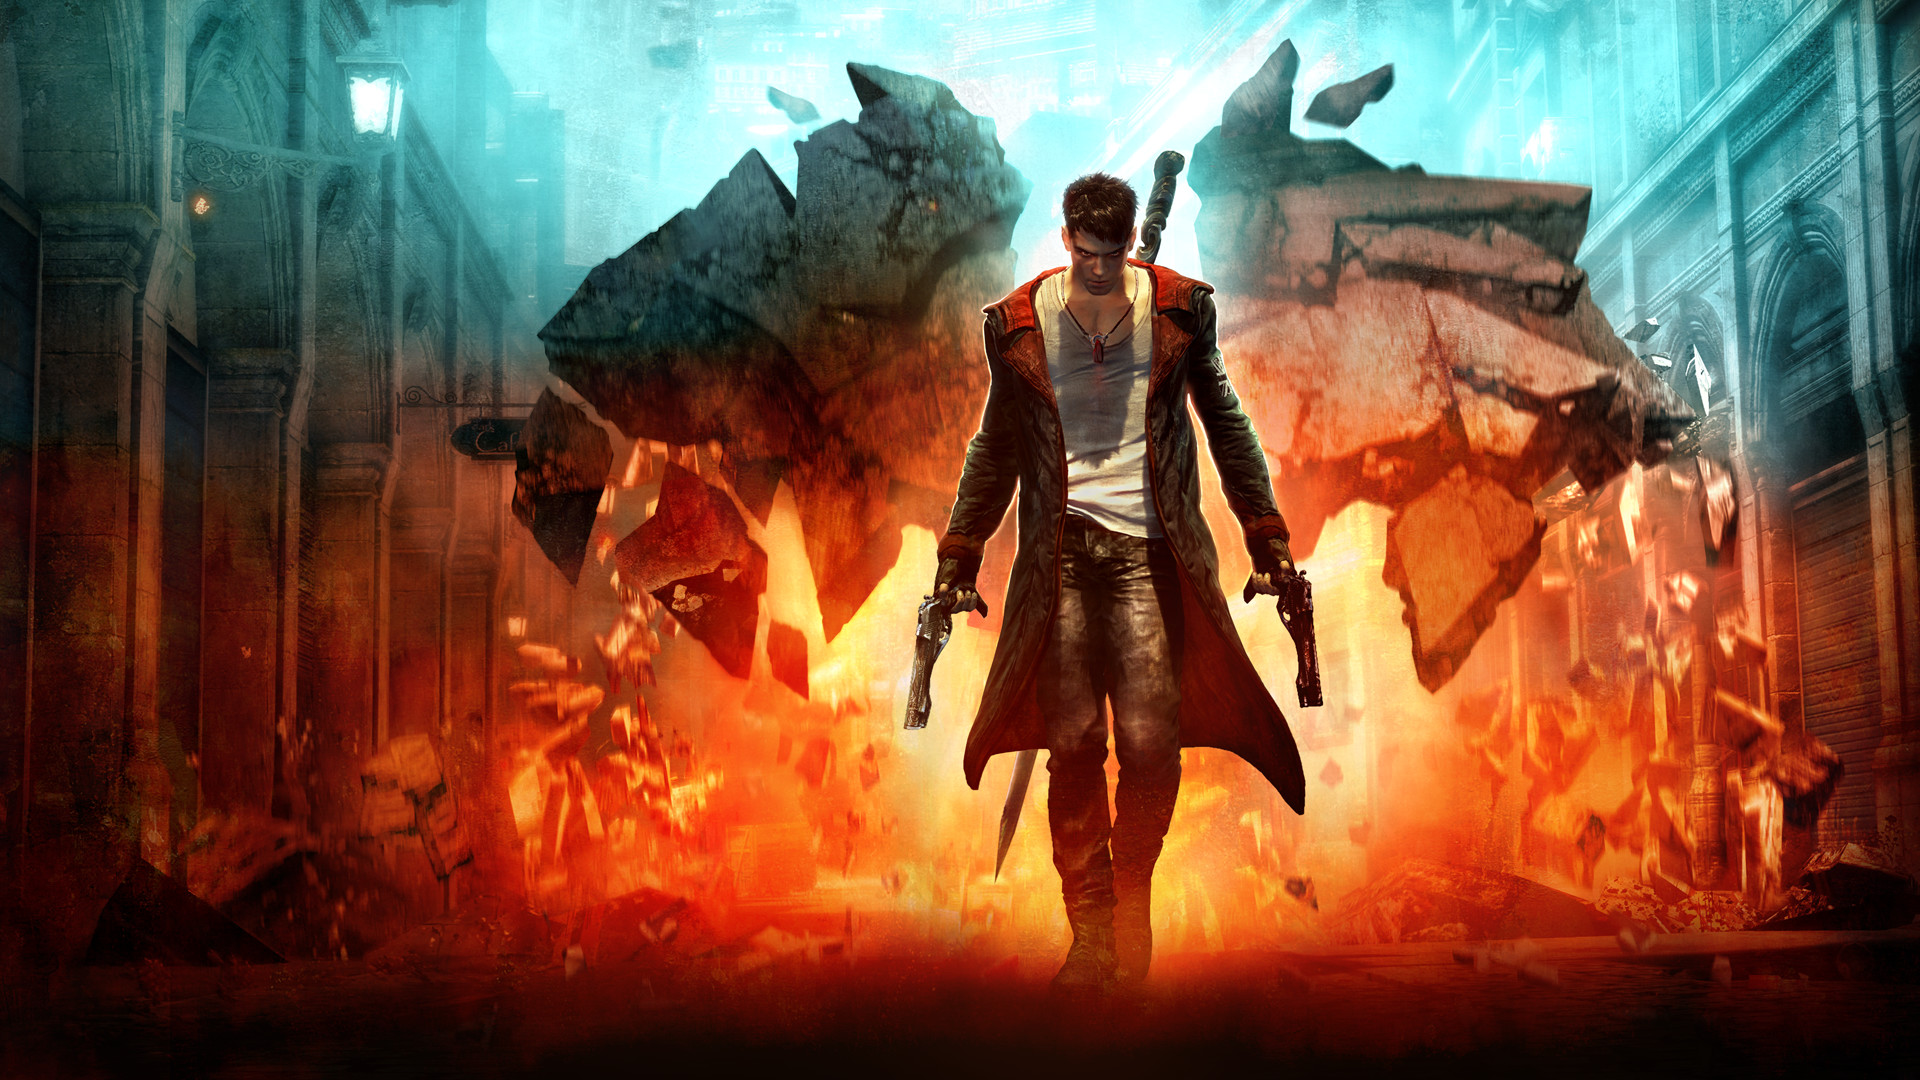 dmc devil may cry soundtrack download